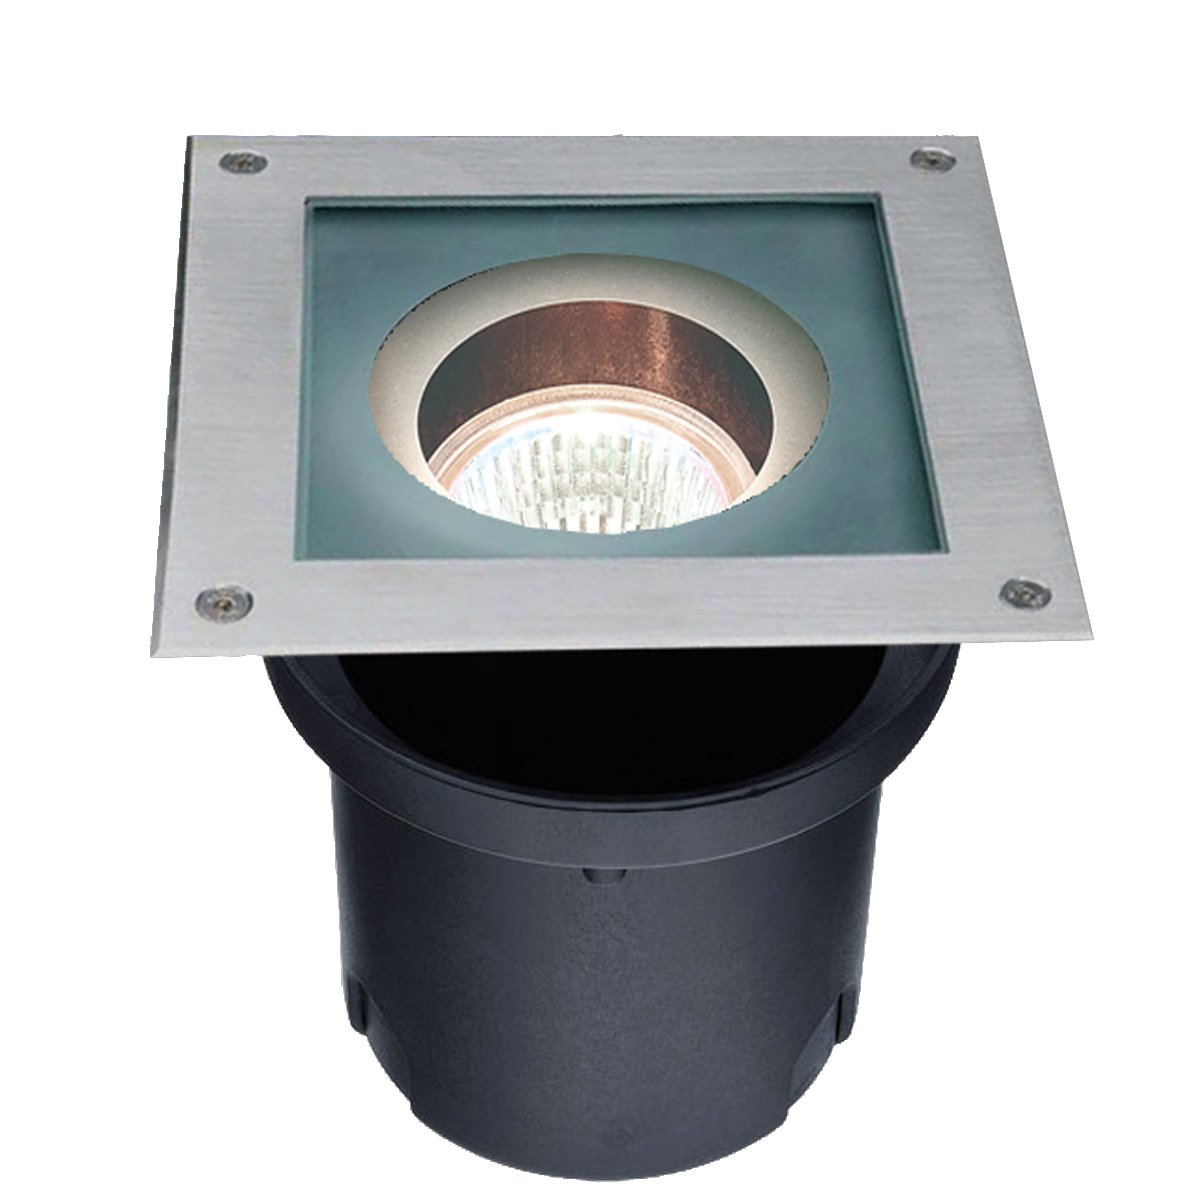 Eurofase IG-02-S5 In-Ground MR16 Square Uplight, Black/Stainless Steel